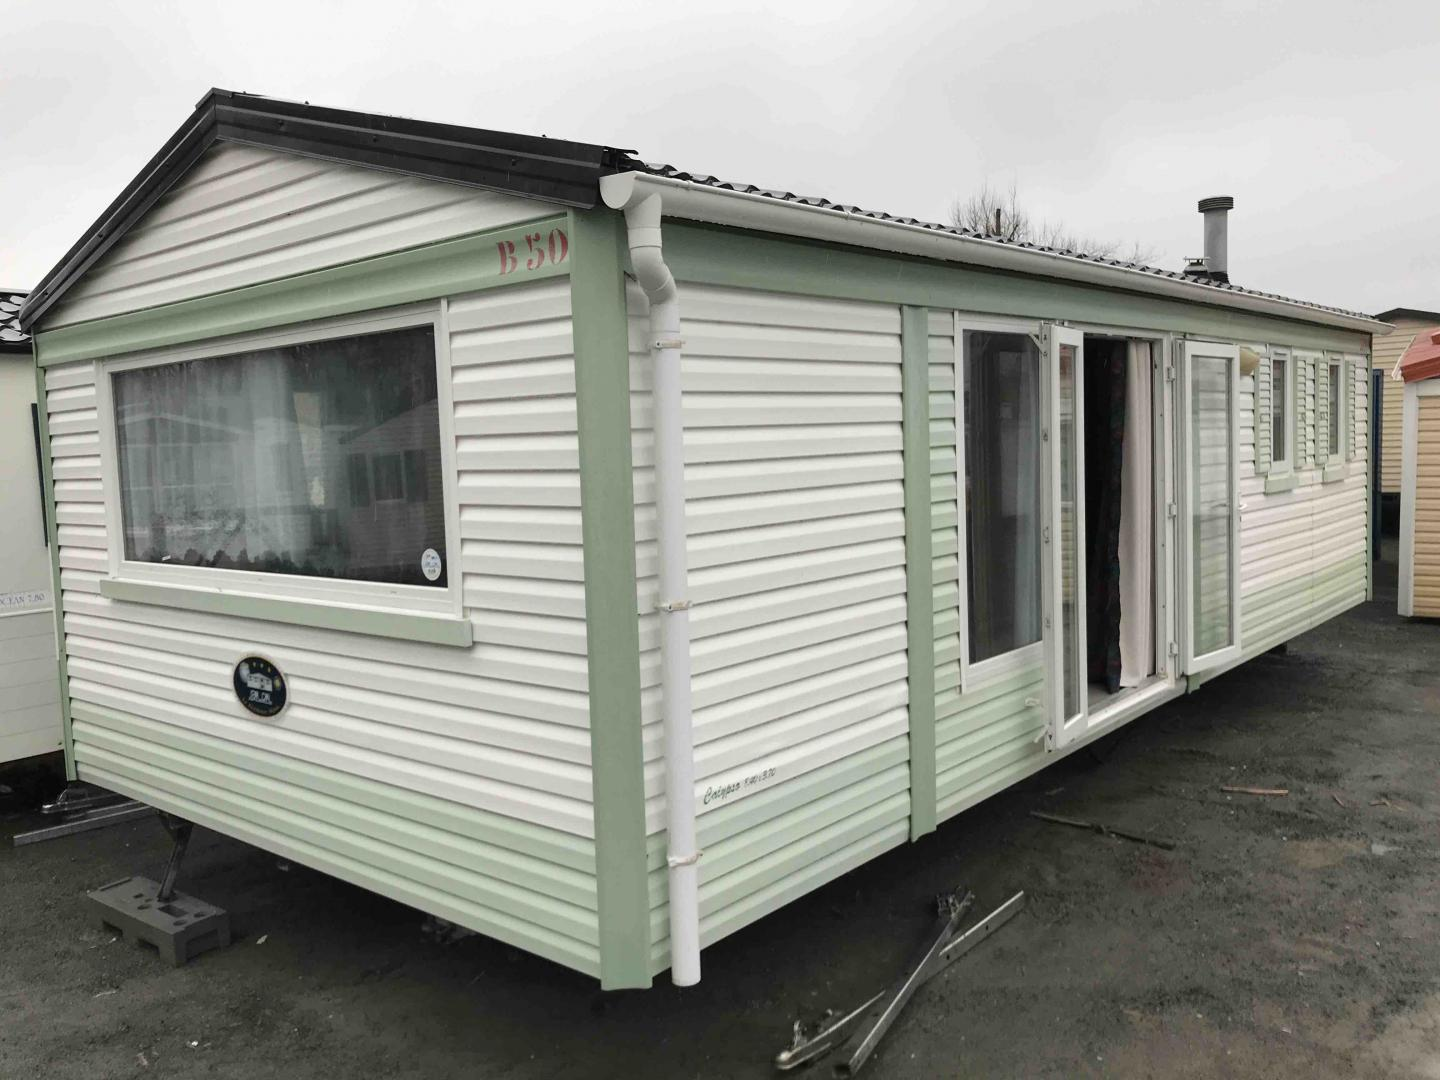 Achat mobil home occasion pas cher